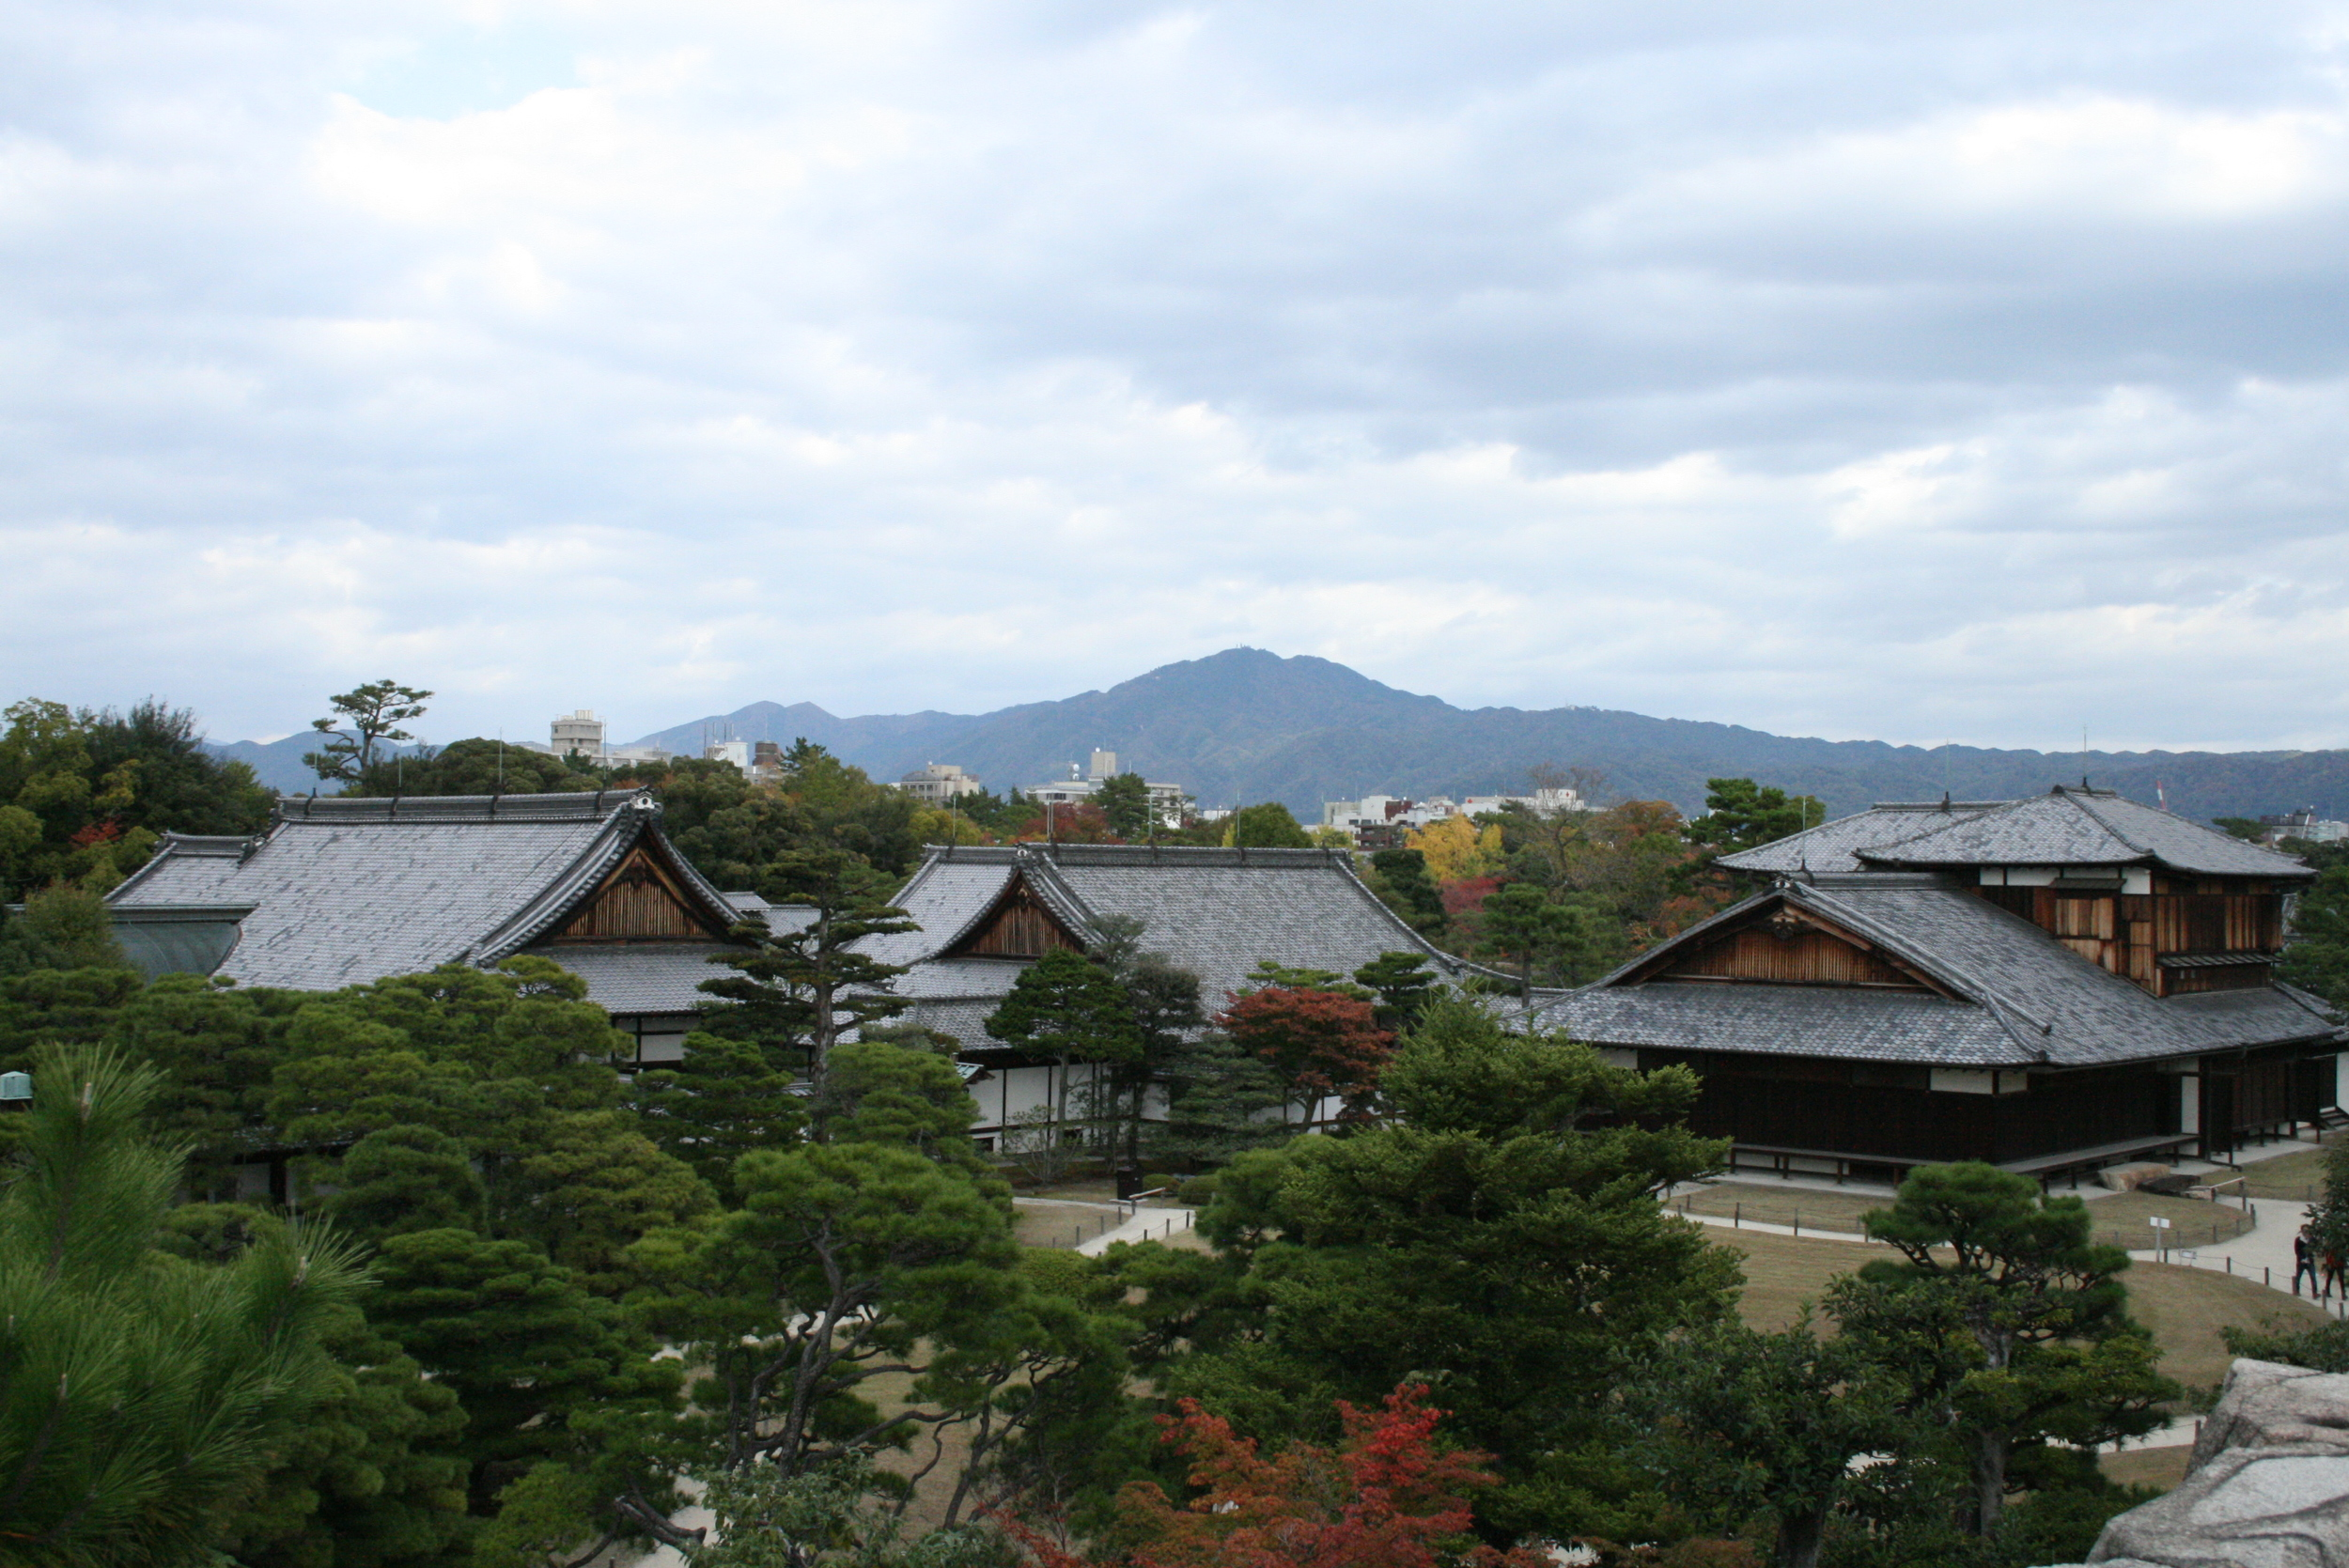 Nijo-jo in Kyoto, Japan // via Jitney's Journeys